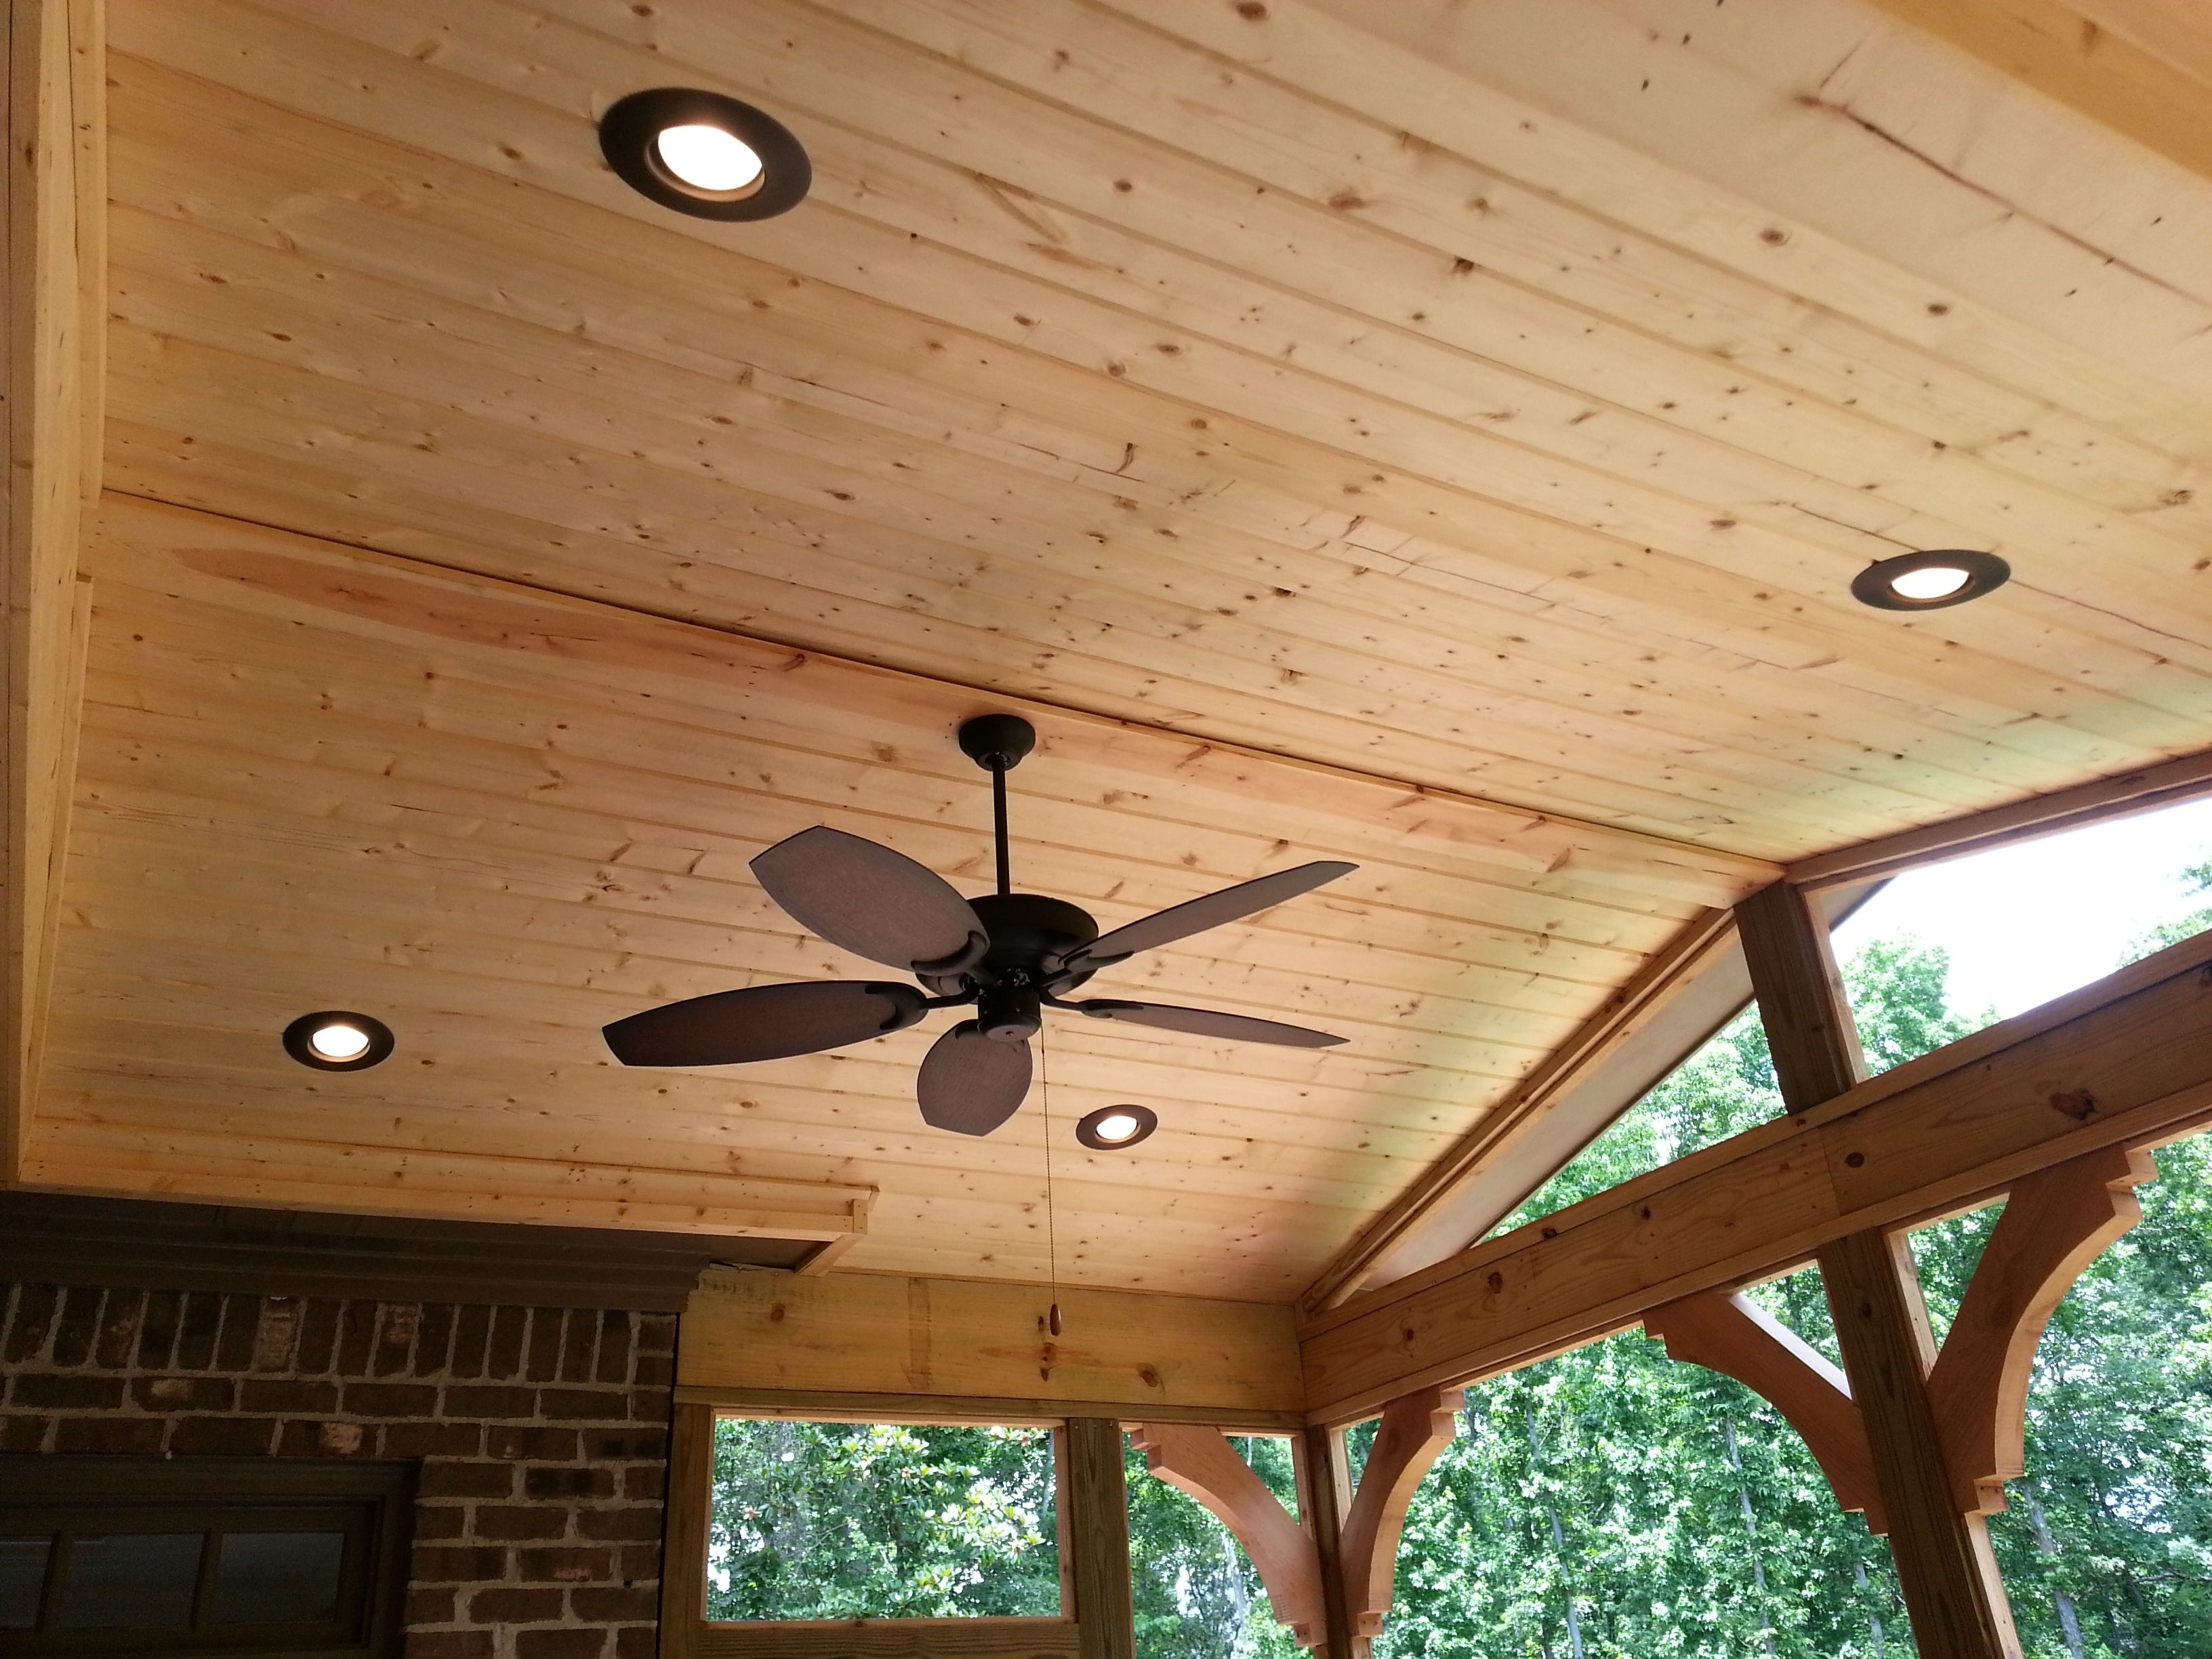 2018 Finished Ceiling With Ceiling Fan And Can Lights – Design Ideas Regarding Outdoor Ceiling Fan Under Deck (View 1 of 20)